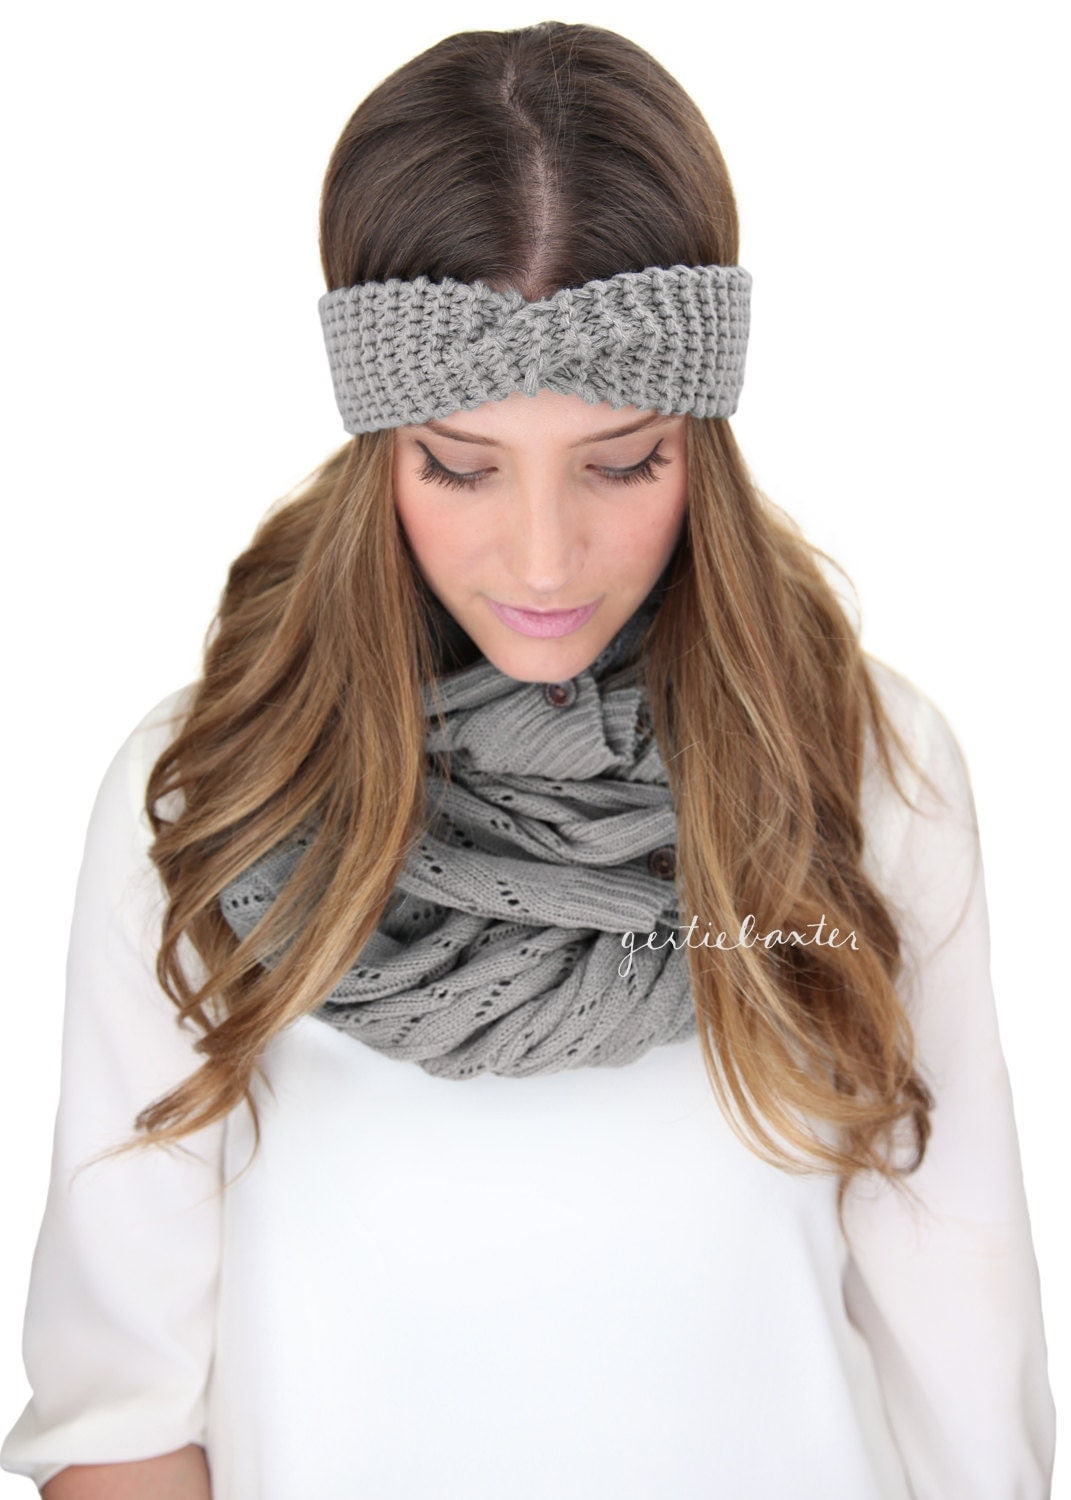 GRAY SKINNY KNIT headband, turban knit earwarmer headband, knitted headband